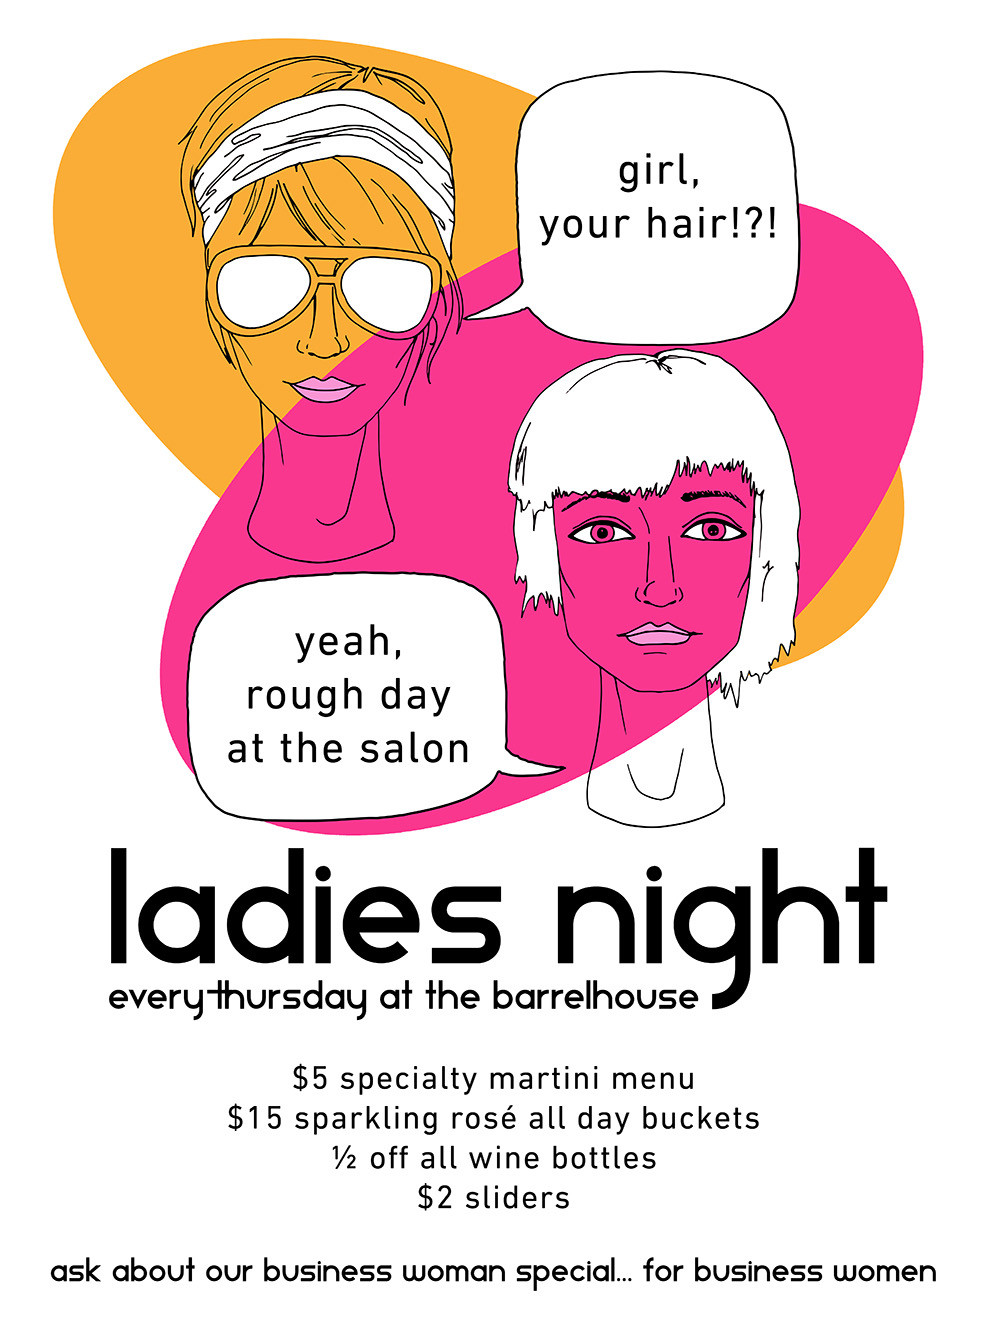 Barrelhouse Hosts Ladies Night Drink Specials Every Thursday